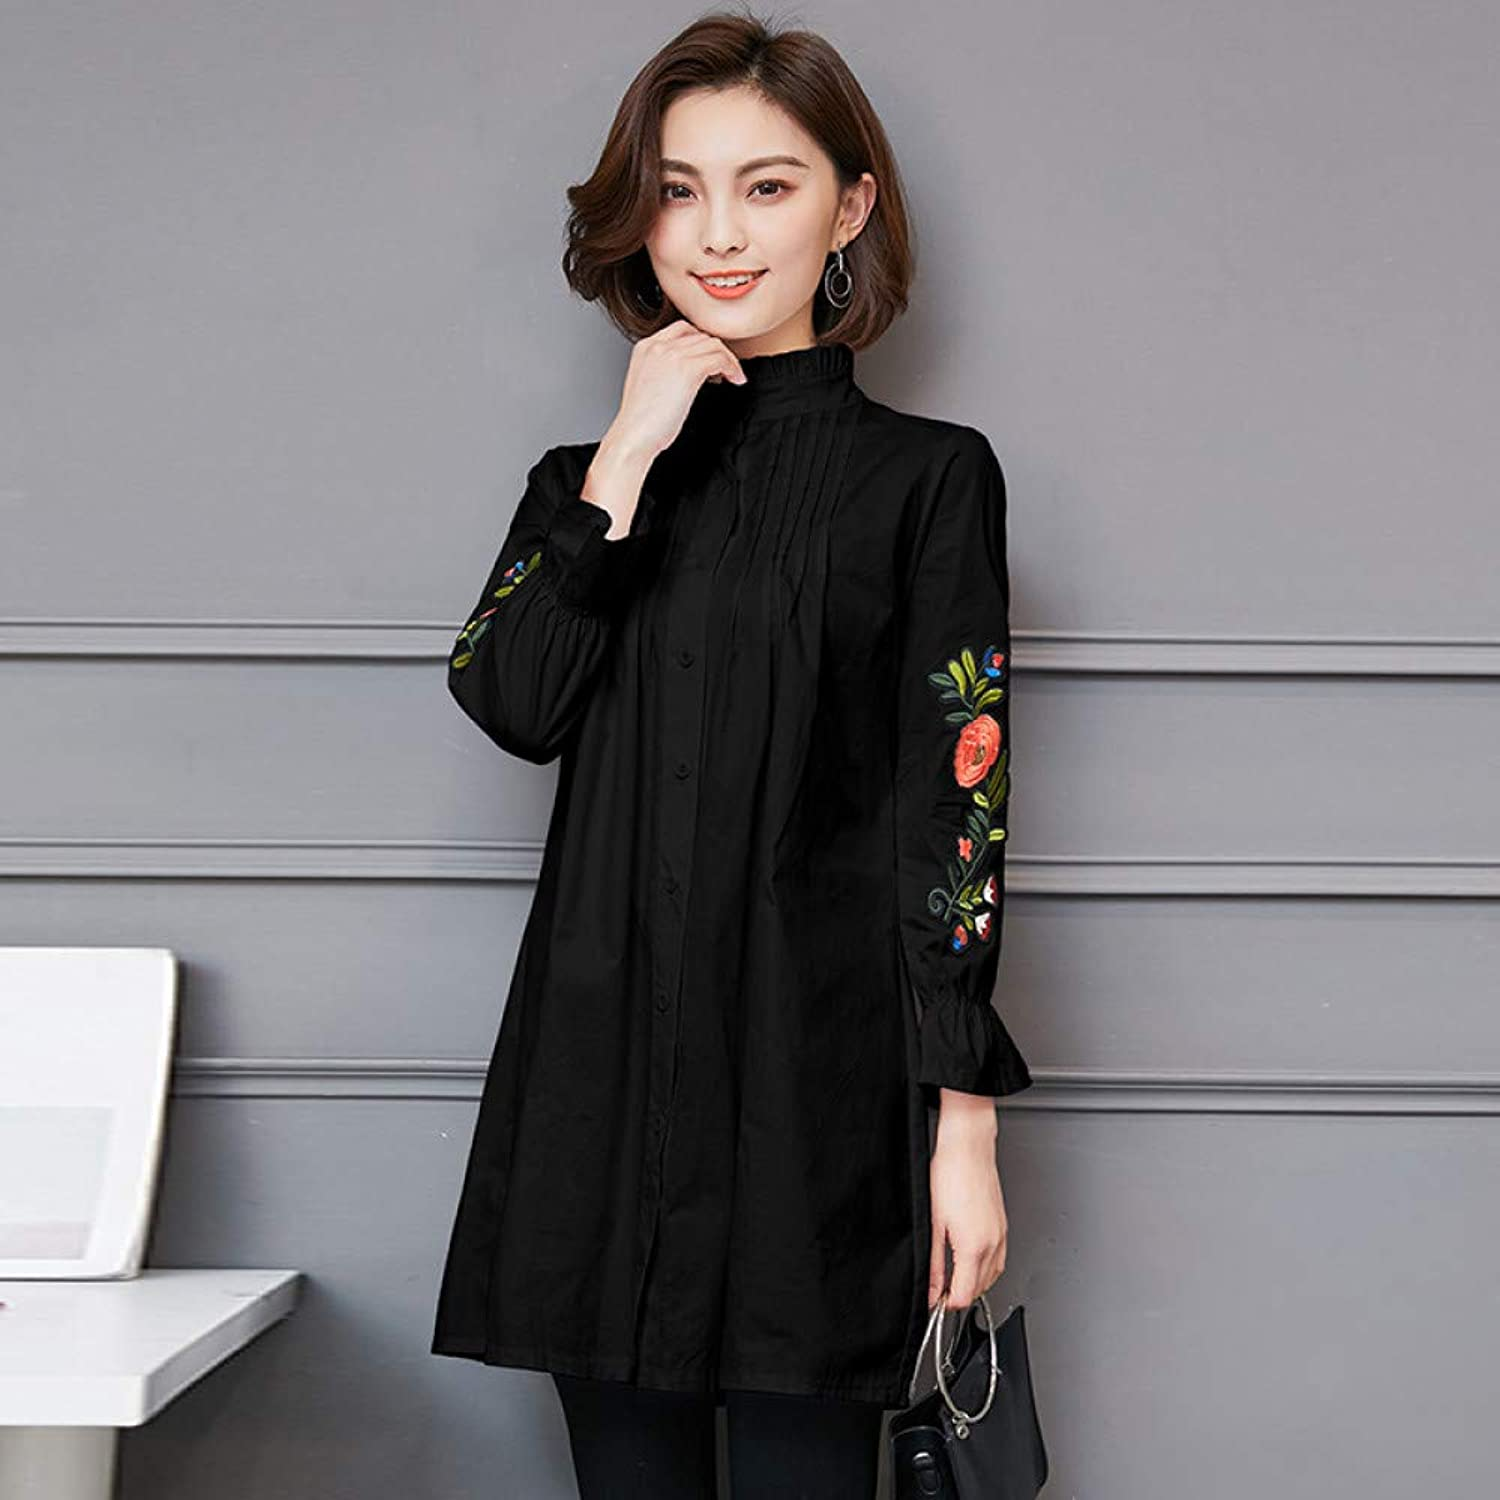 Cxlyq Dresses Large Size Women's Shirt Embroidery Long Section SevenPoint Sleeve Shirt Dress